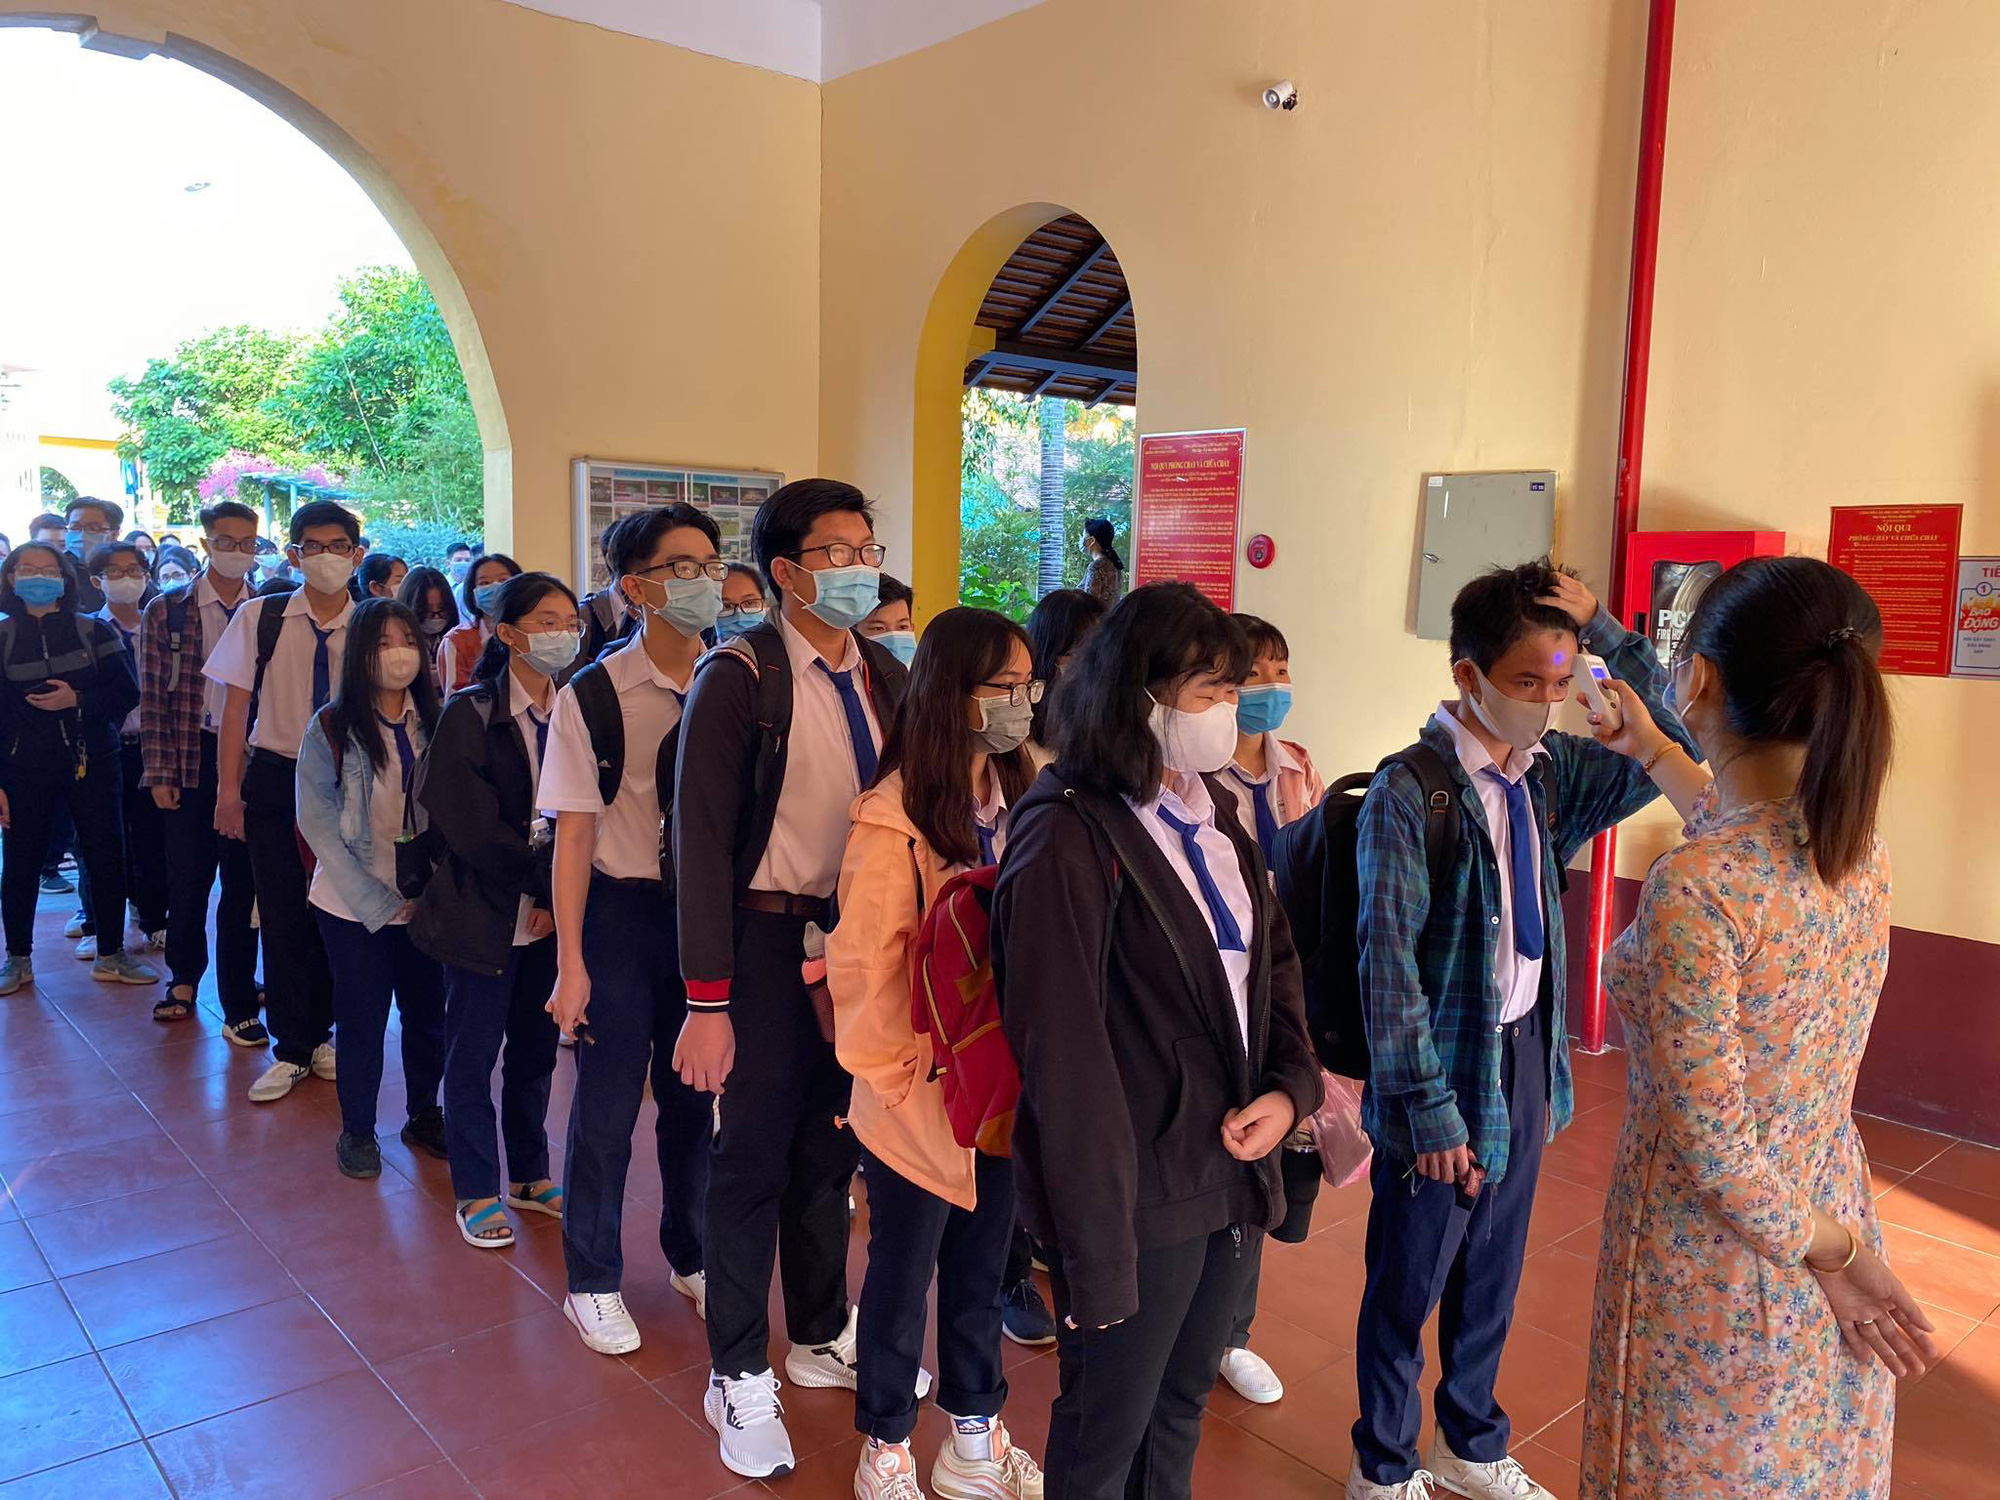 Students have their body temperature measured before entering of Chau Van Liem High School in Can Tho City on May 4, 2020. Photo: Thuy Trang / Tuoi Tre